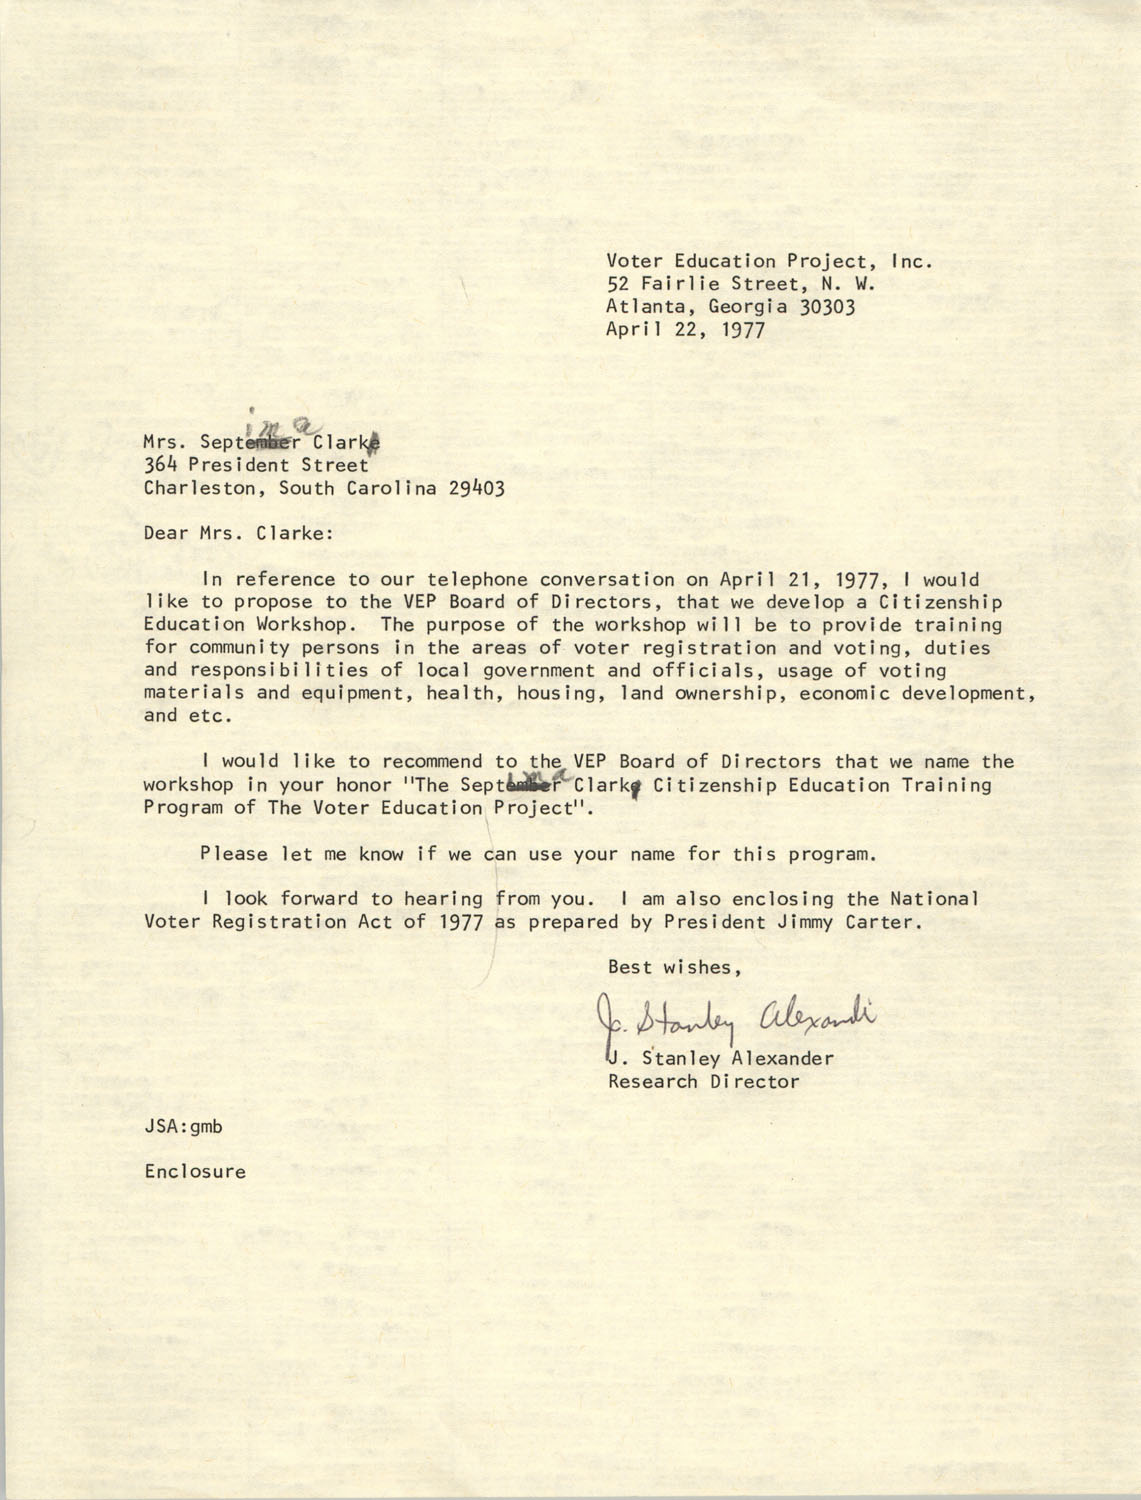 Letter from J. Stanley Alexander to Septima P. Clark, April 22, 1977